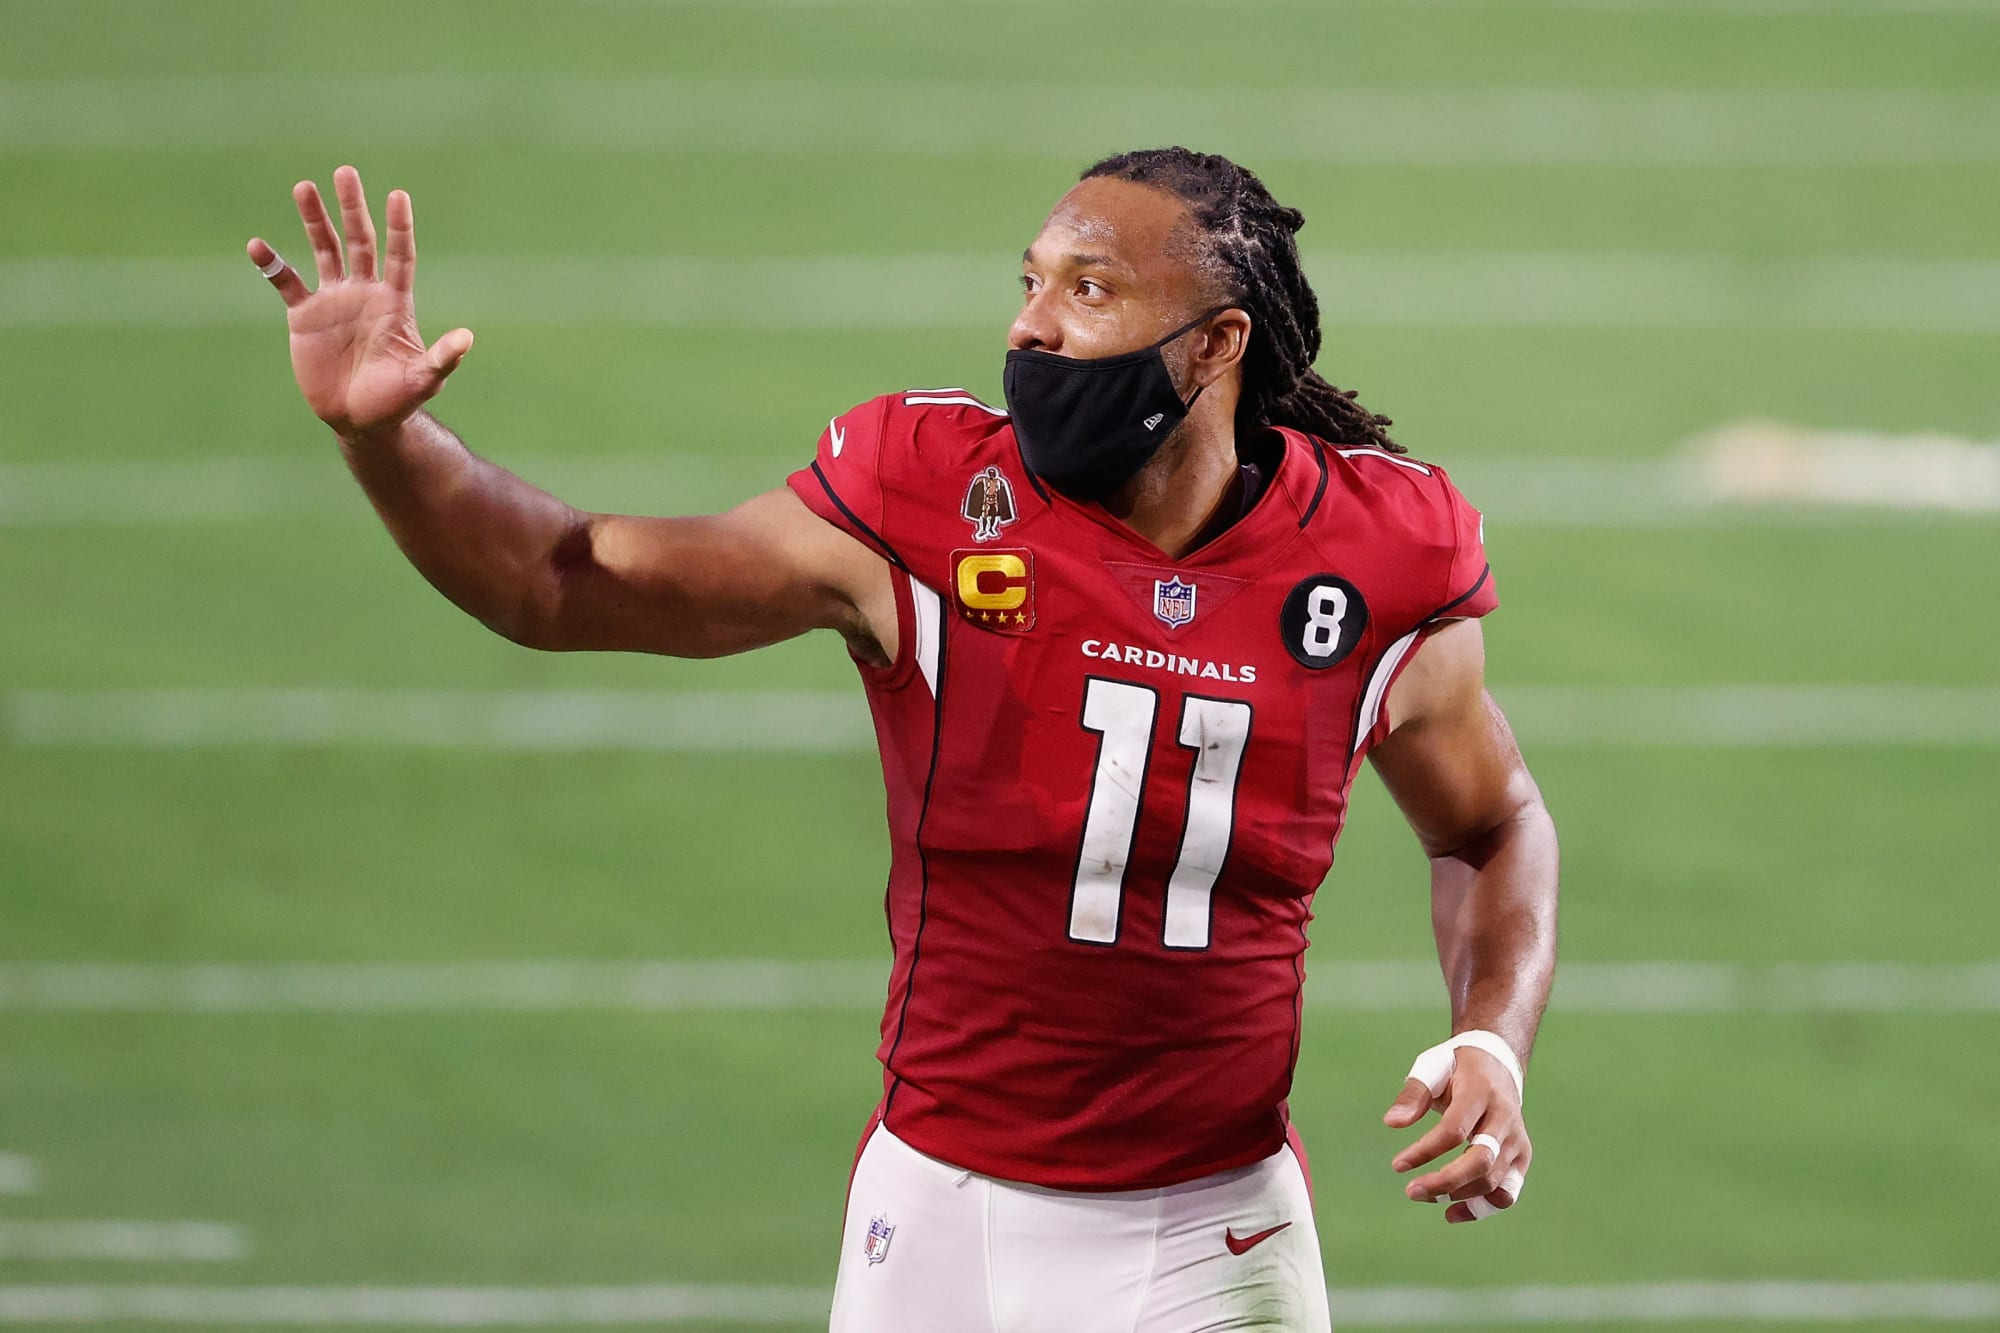 The beans might have spilled about Larry Fitzgerald retiring